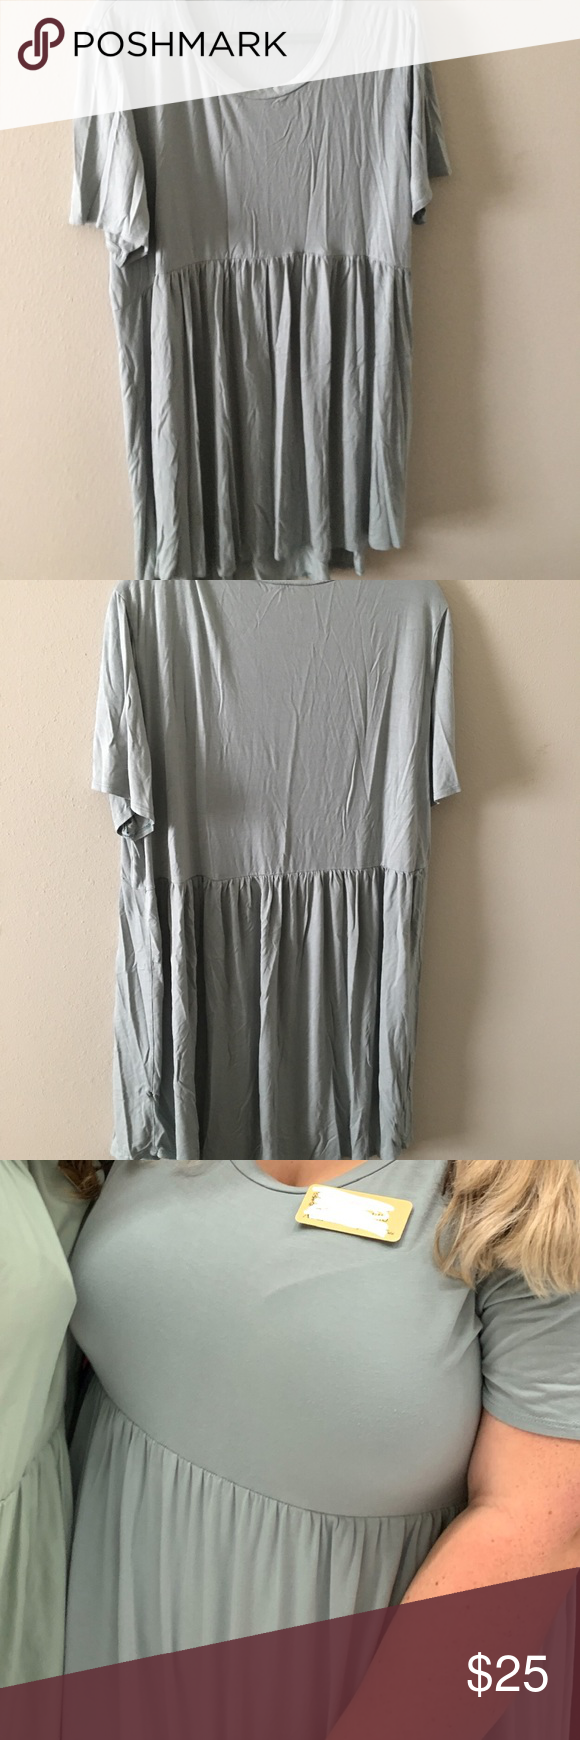 Sage Green Soft Dress Very soft and comfortable sage green dress. I am seen wearing (last photo). Worn once. Jersey/super soft material. Gathered under the bust for super flattering figure. From a boutique.  Bust: 25 Dresses #sagegreendress